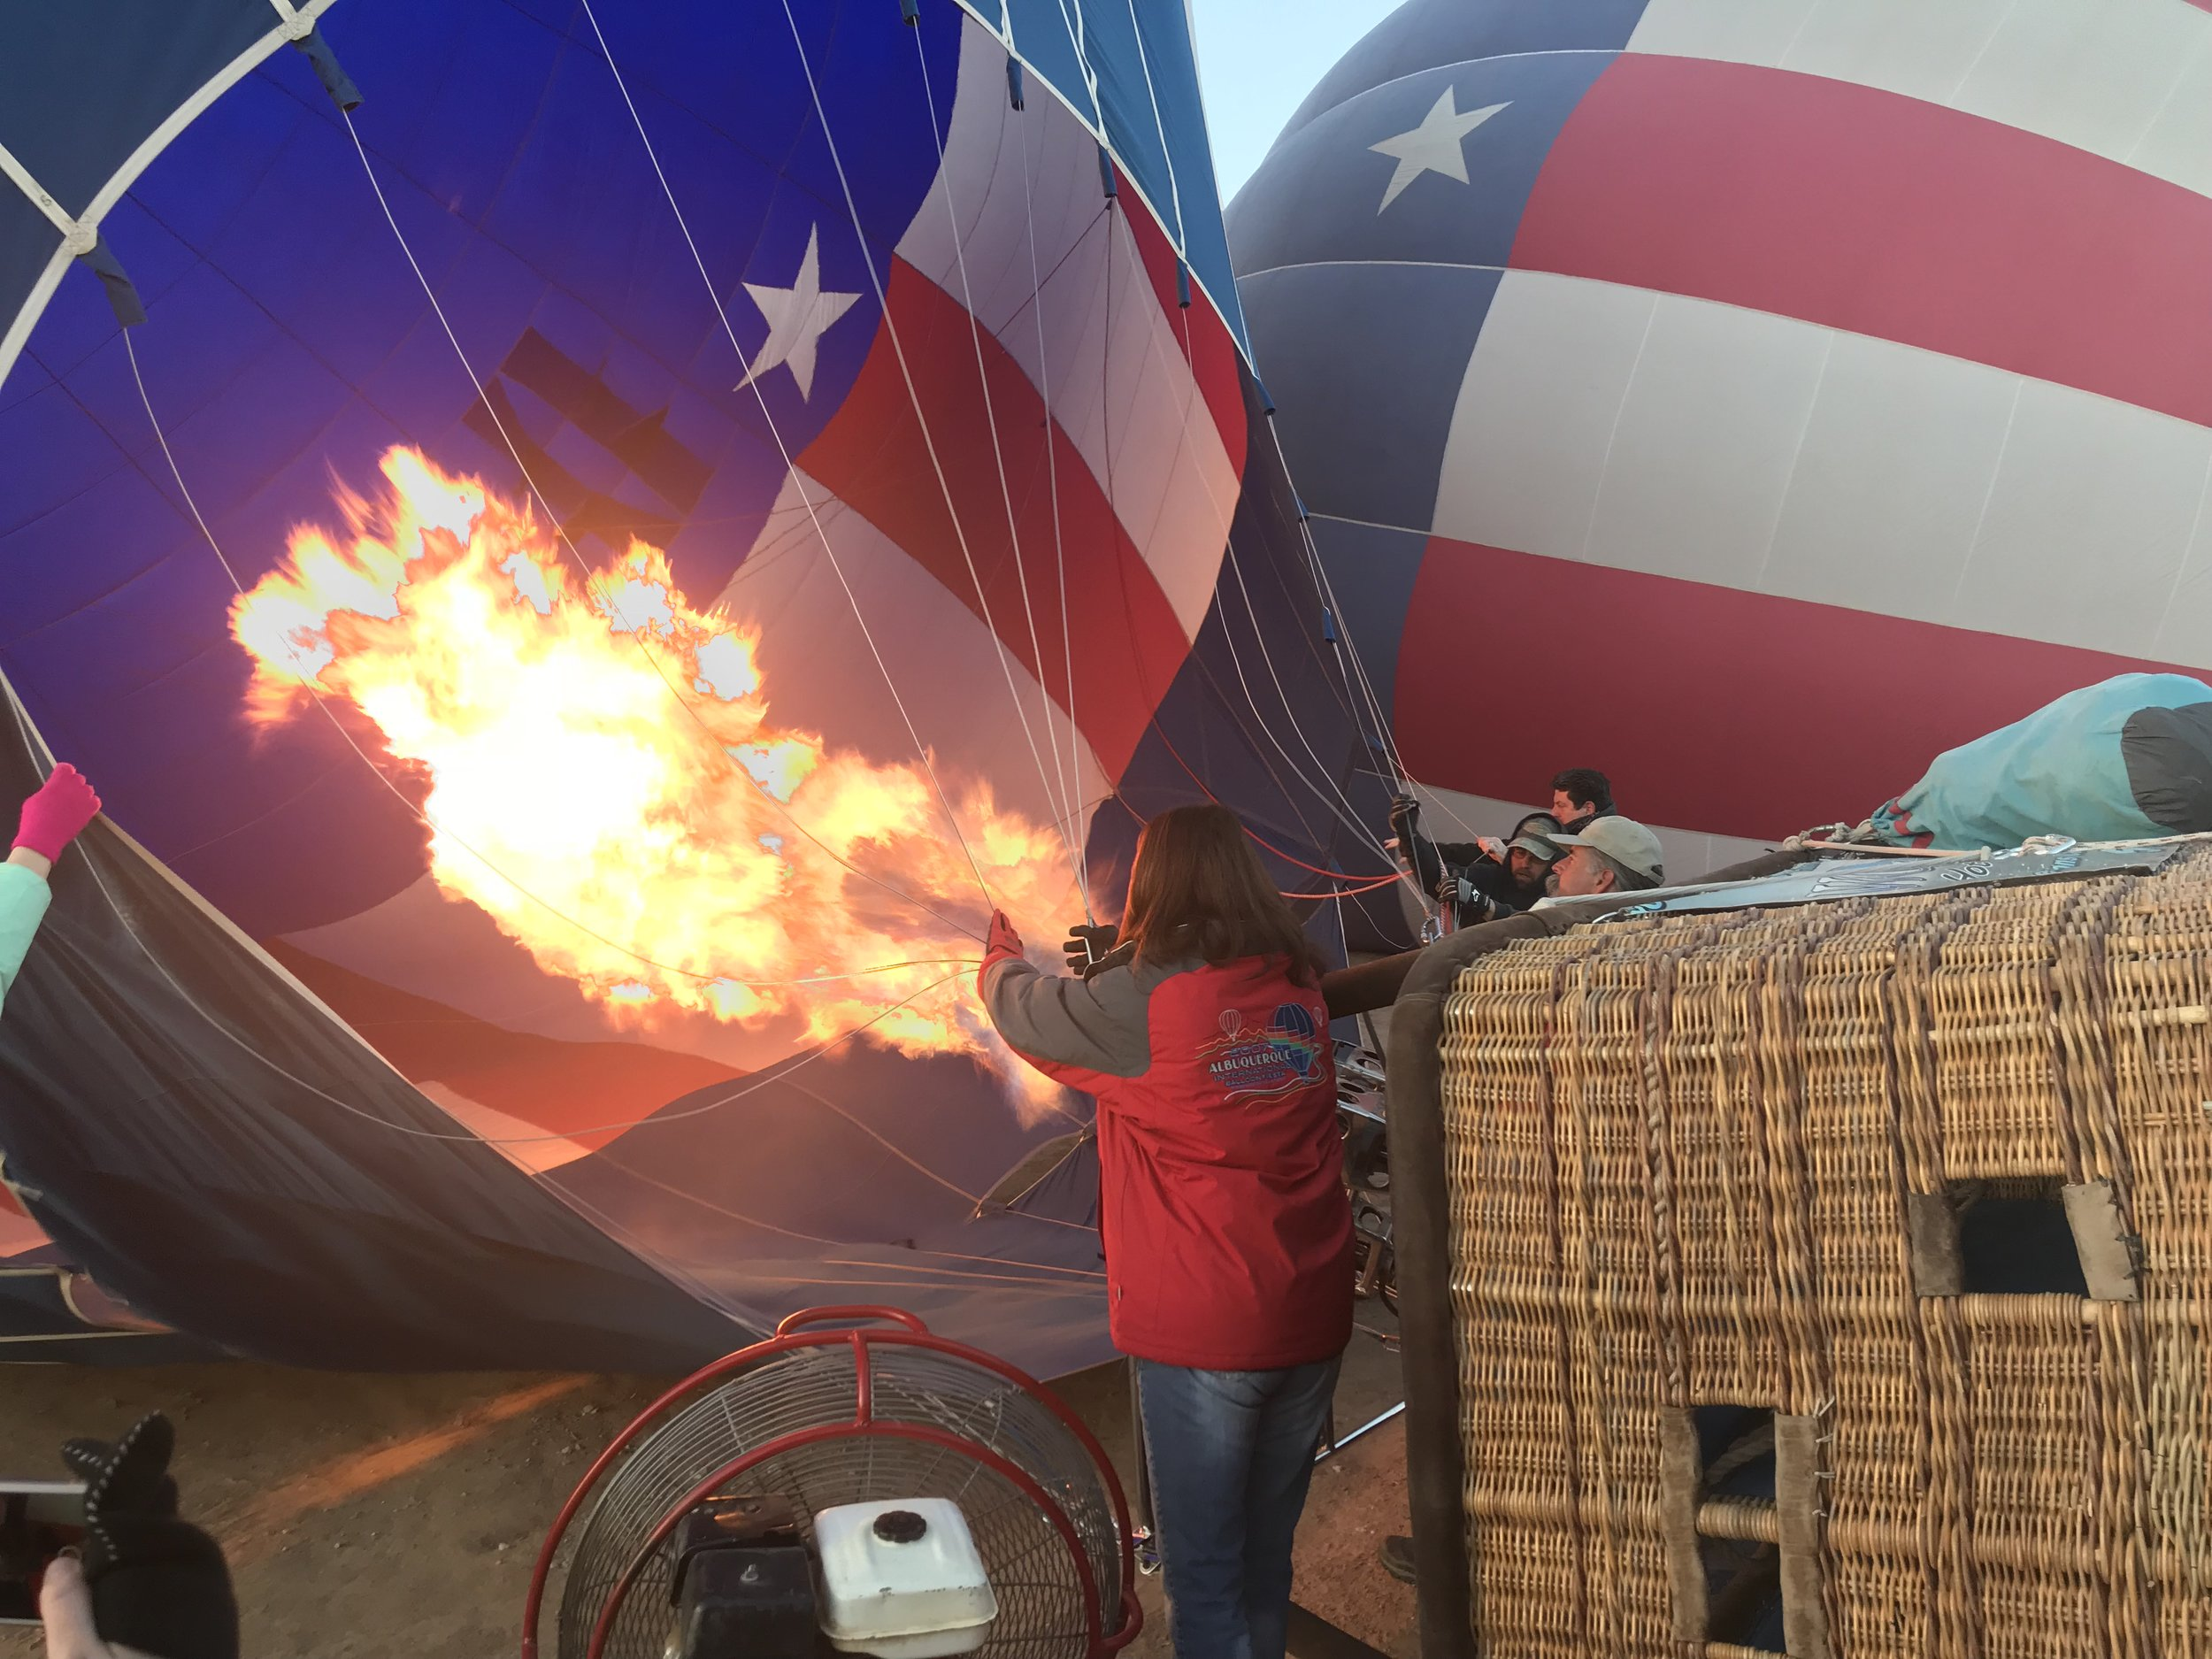 Firing up the balloon for a sunrise ride!